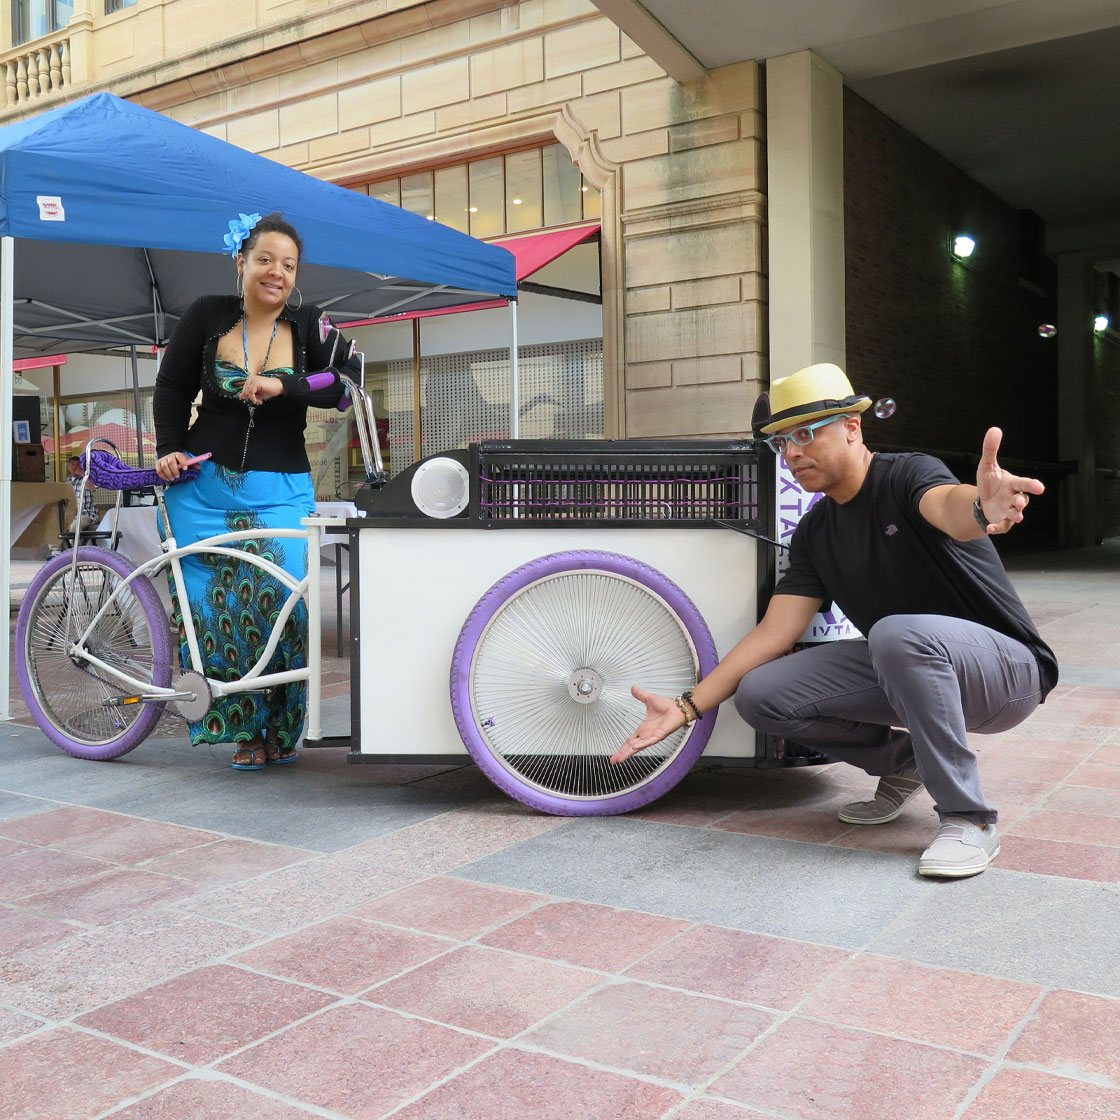 Two people standing around a mobile art unit